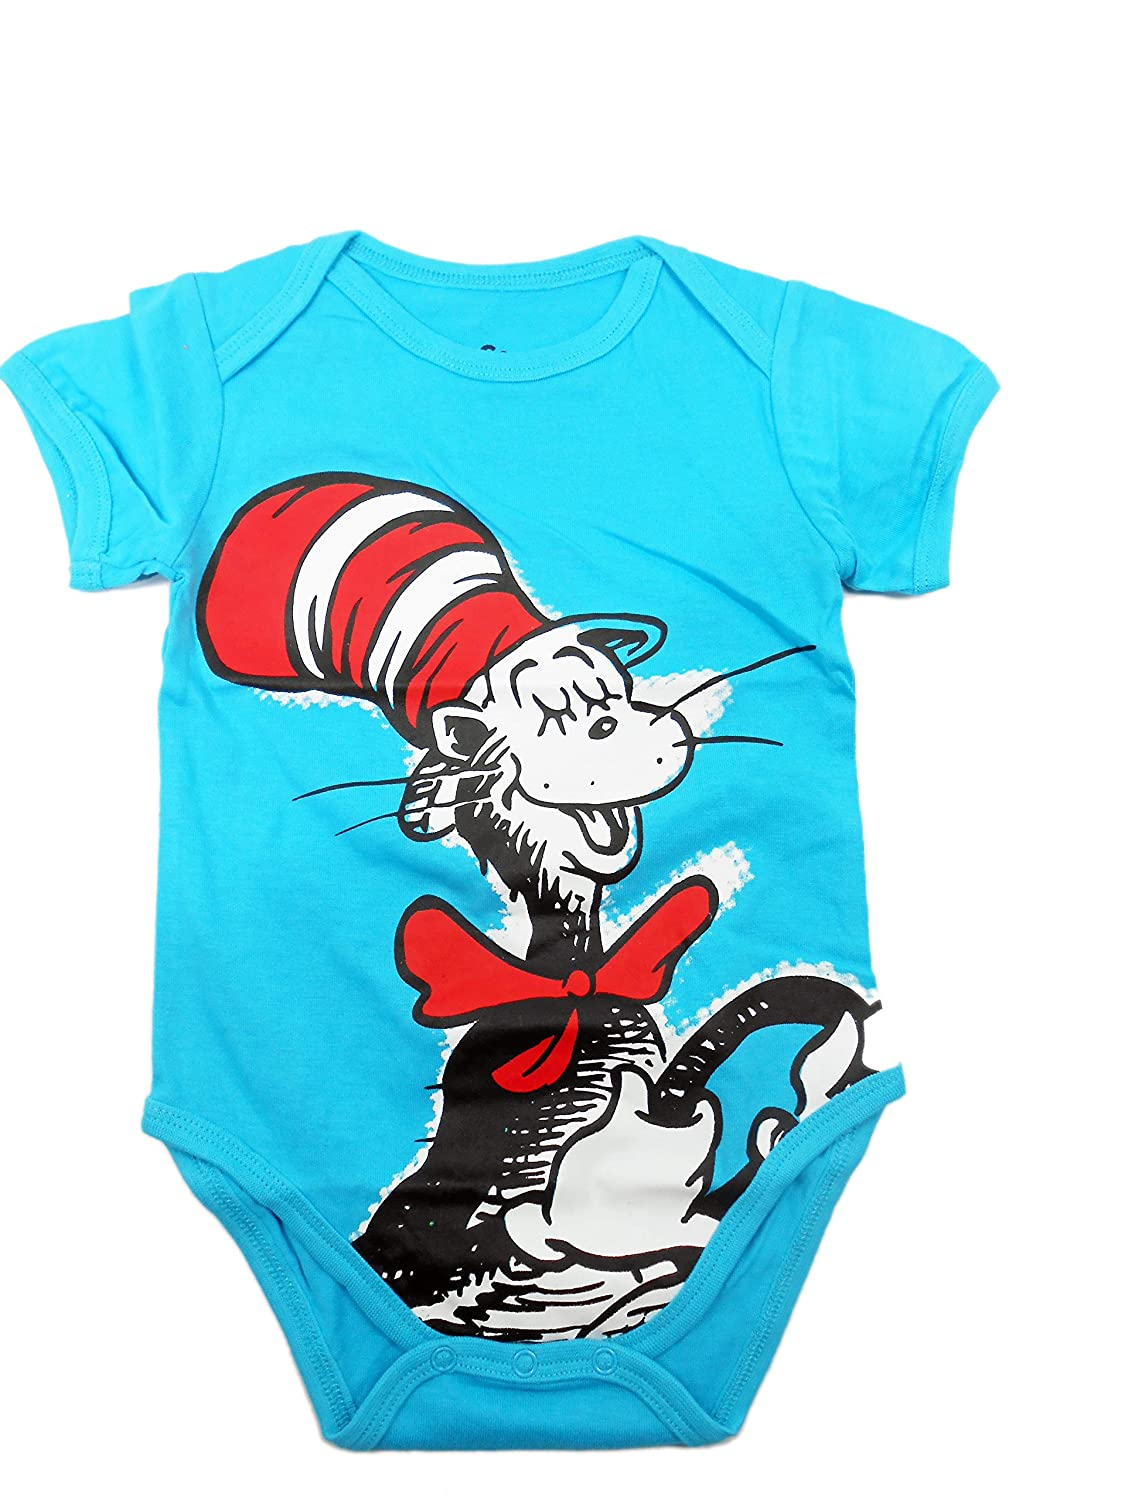 7c0be1667 Amazon.com: Bumkins Newborn Dr. Seuss The Cat in The Hat Graphics Short  Sleeve Bodysuit (9M): Baby